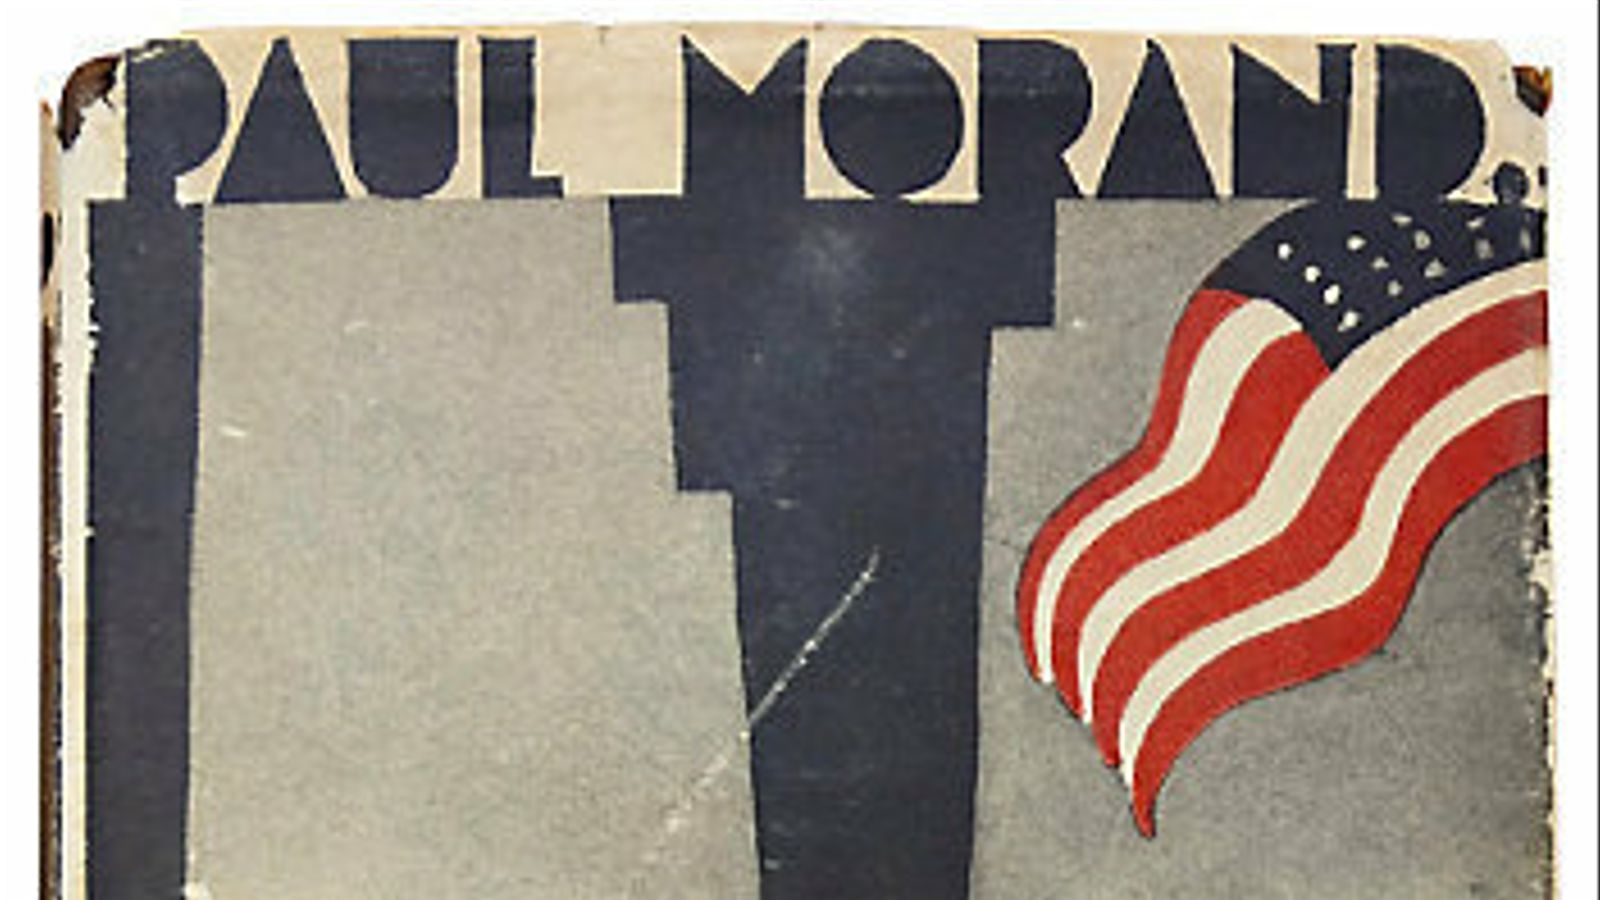 New-York-Paul Morand (1930)